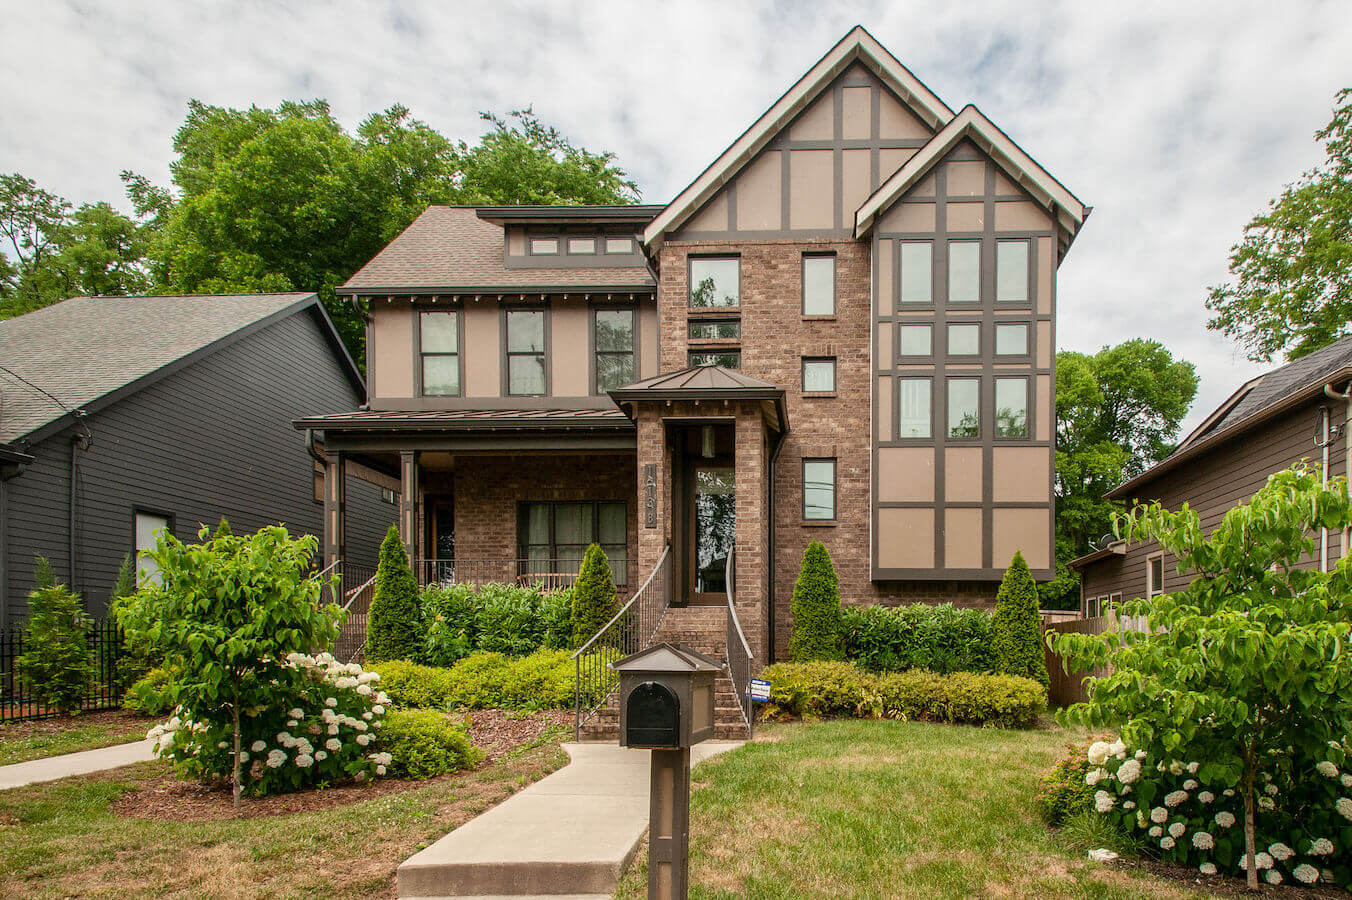 A two story brick house with a wonderful green lawn full of flowers and grass.